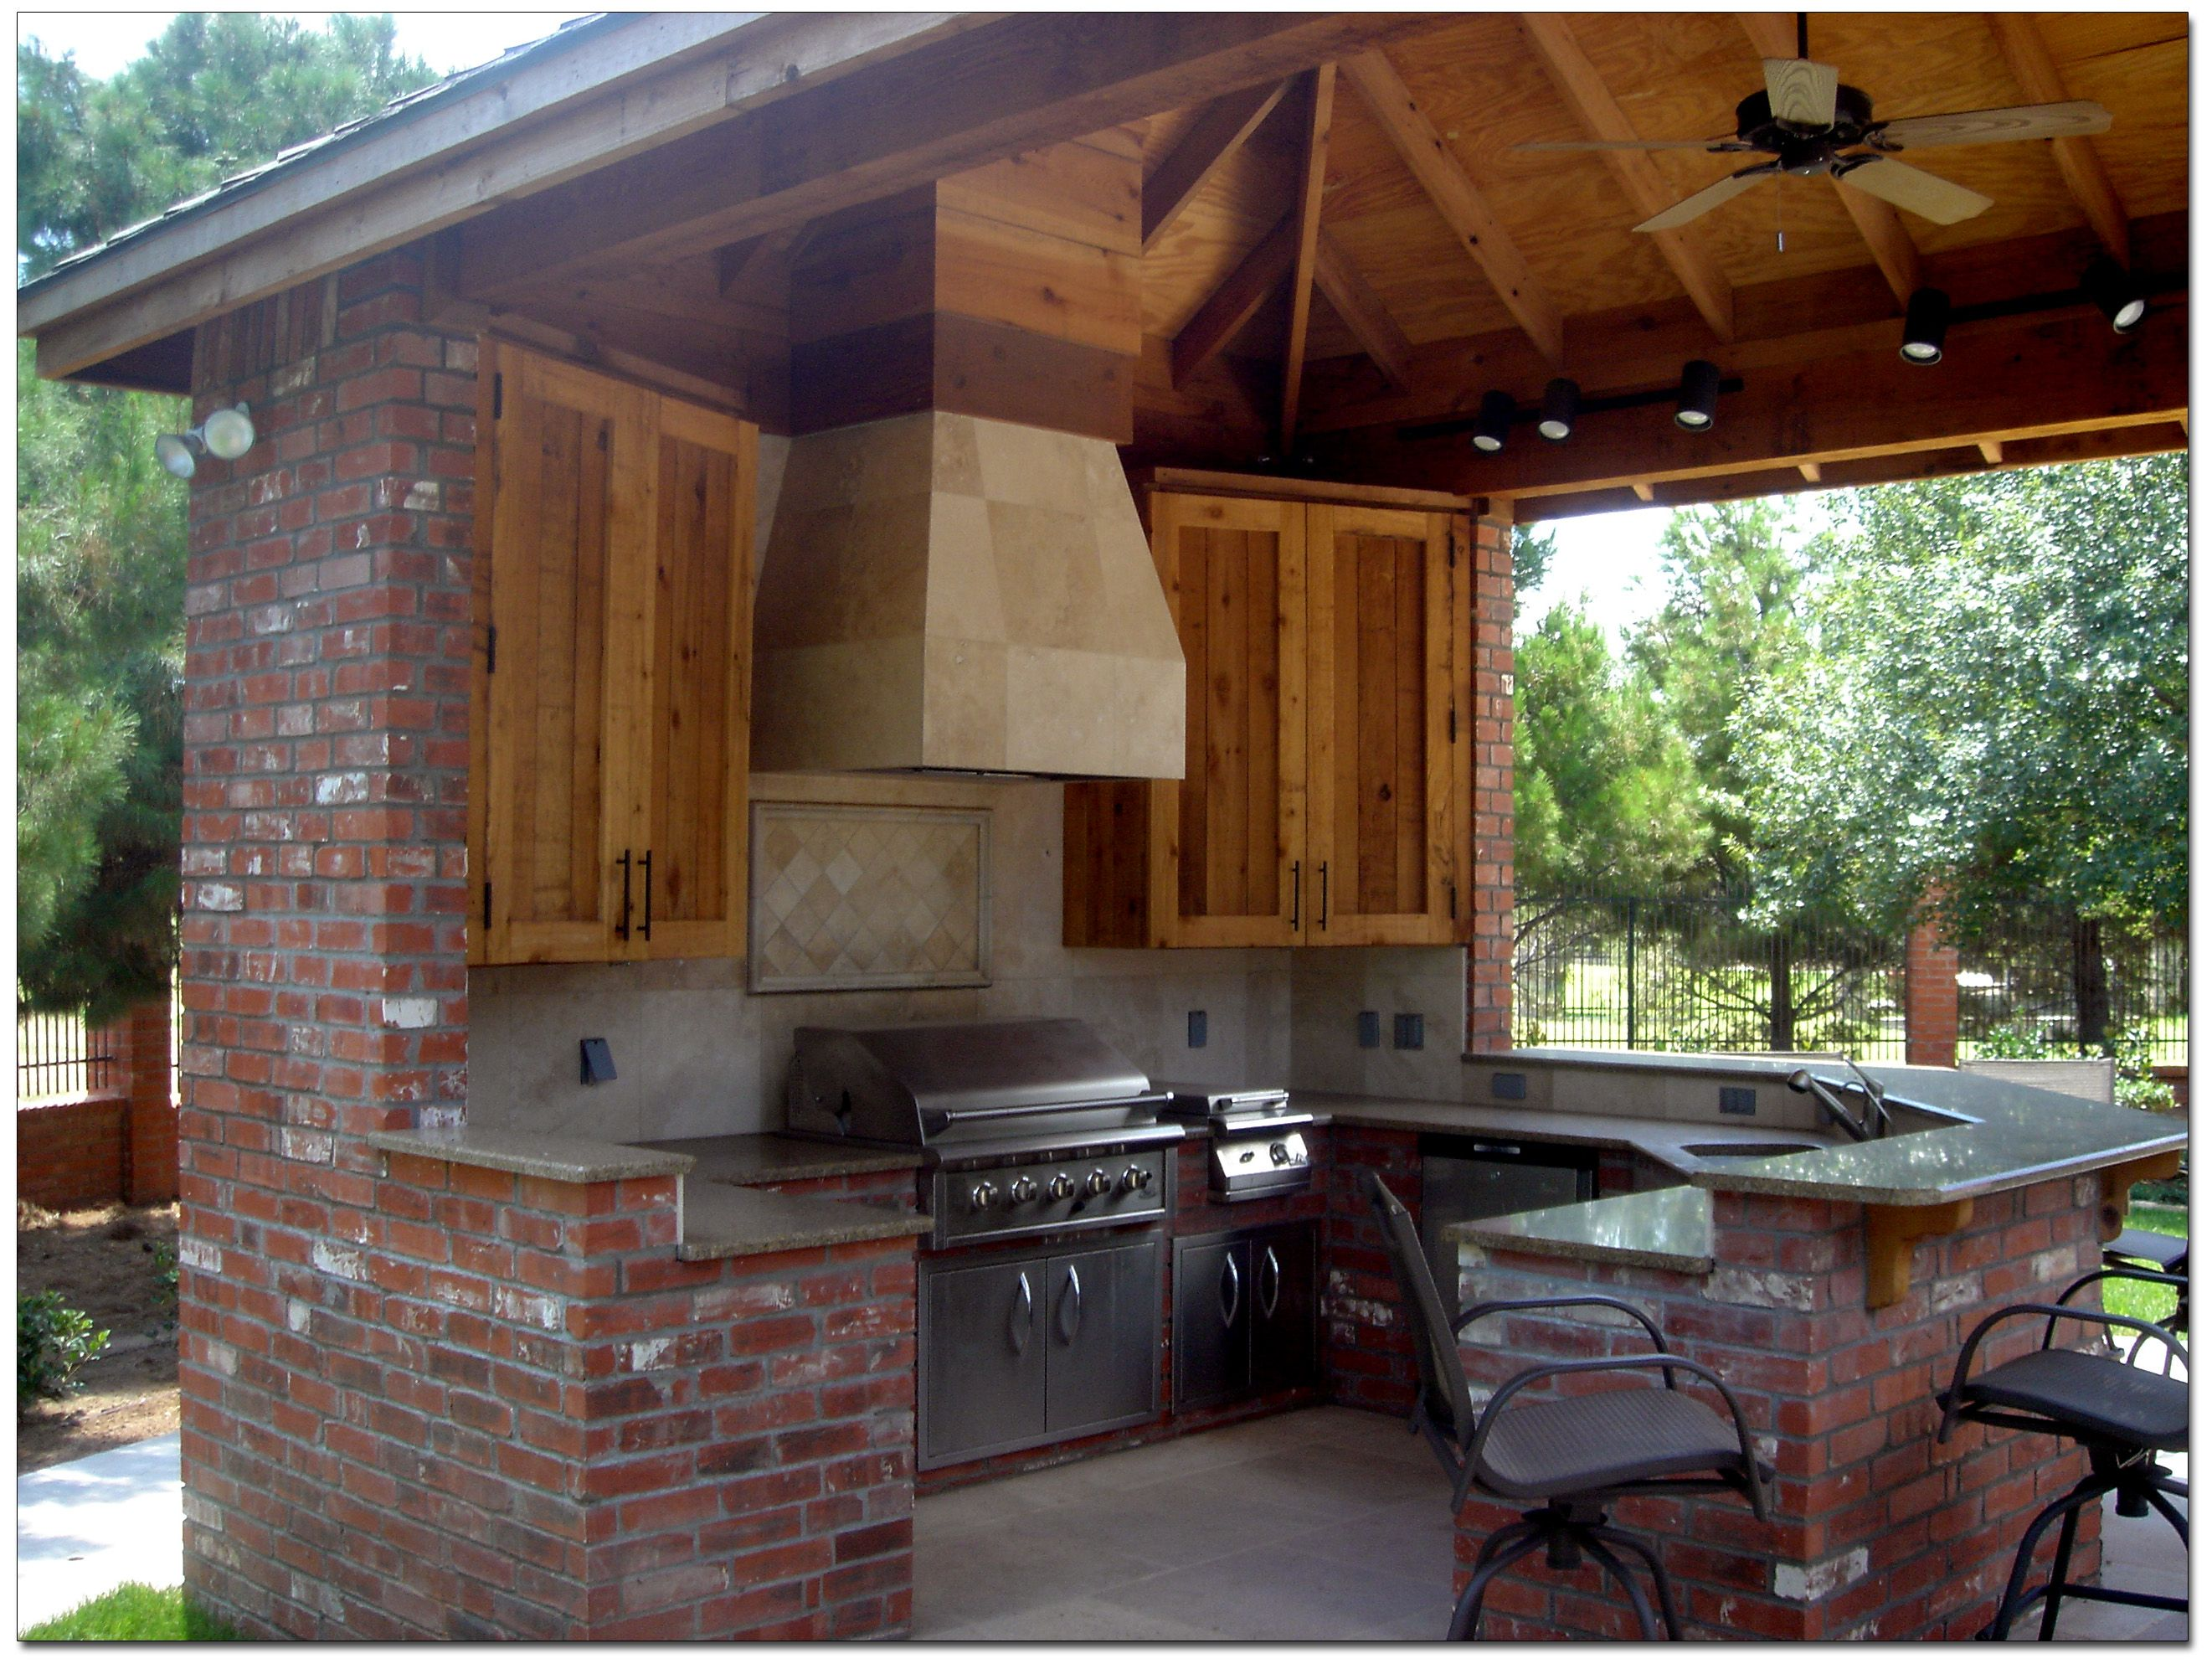 outdoor kitchens and pool designs outdoor kitchen backyard pinterest pool designs on outdoor kitchen plans layout id=92994